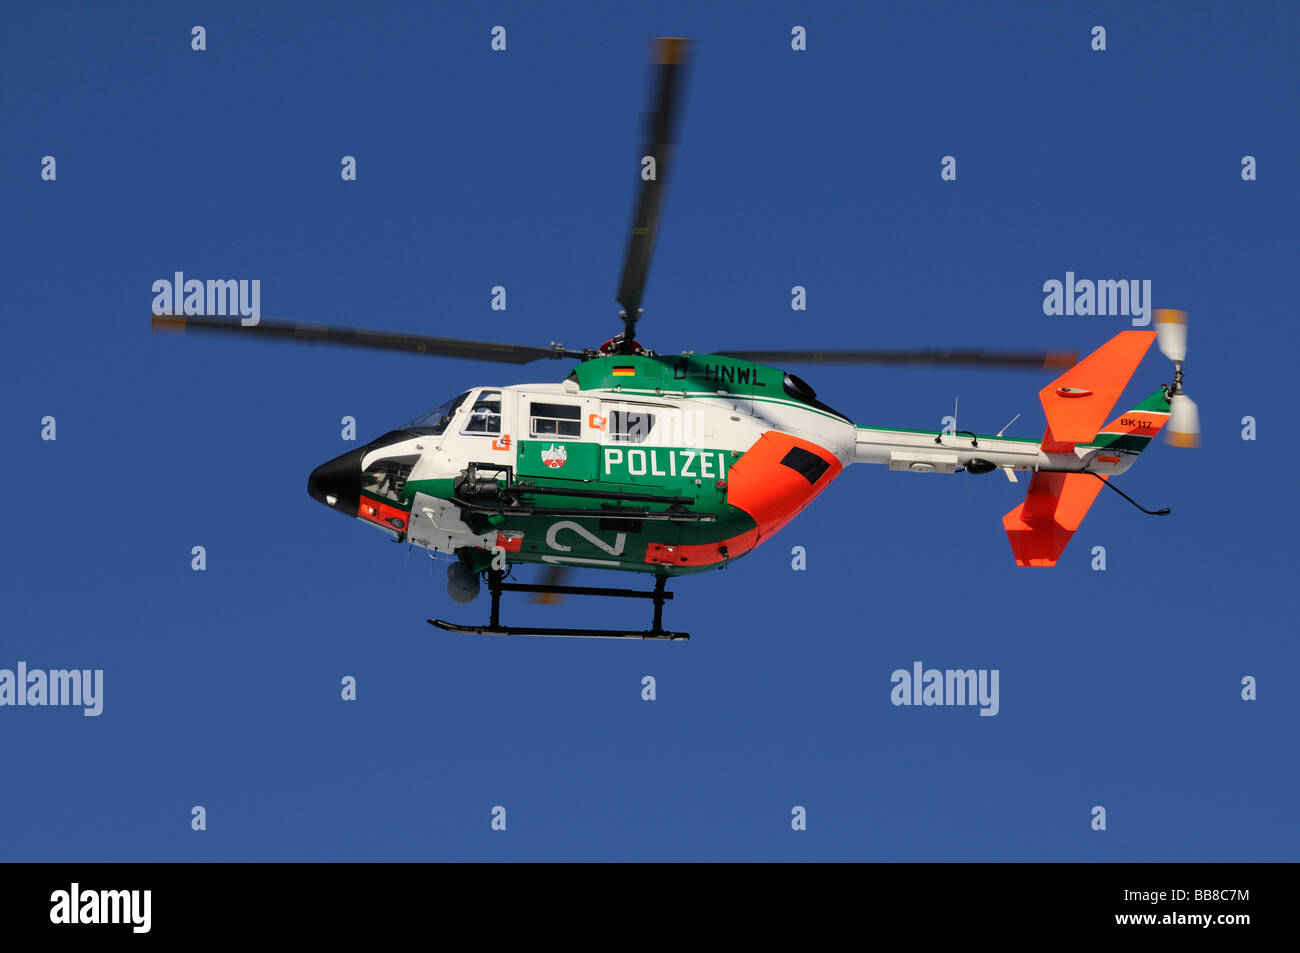 Police helicopter in flight against a steel-blue sky - Stock Image